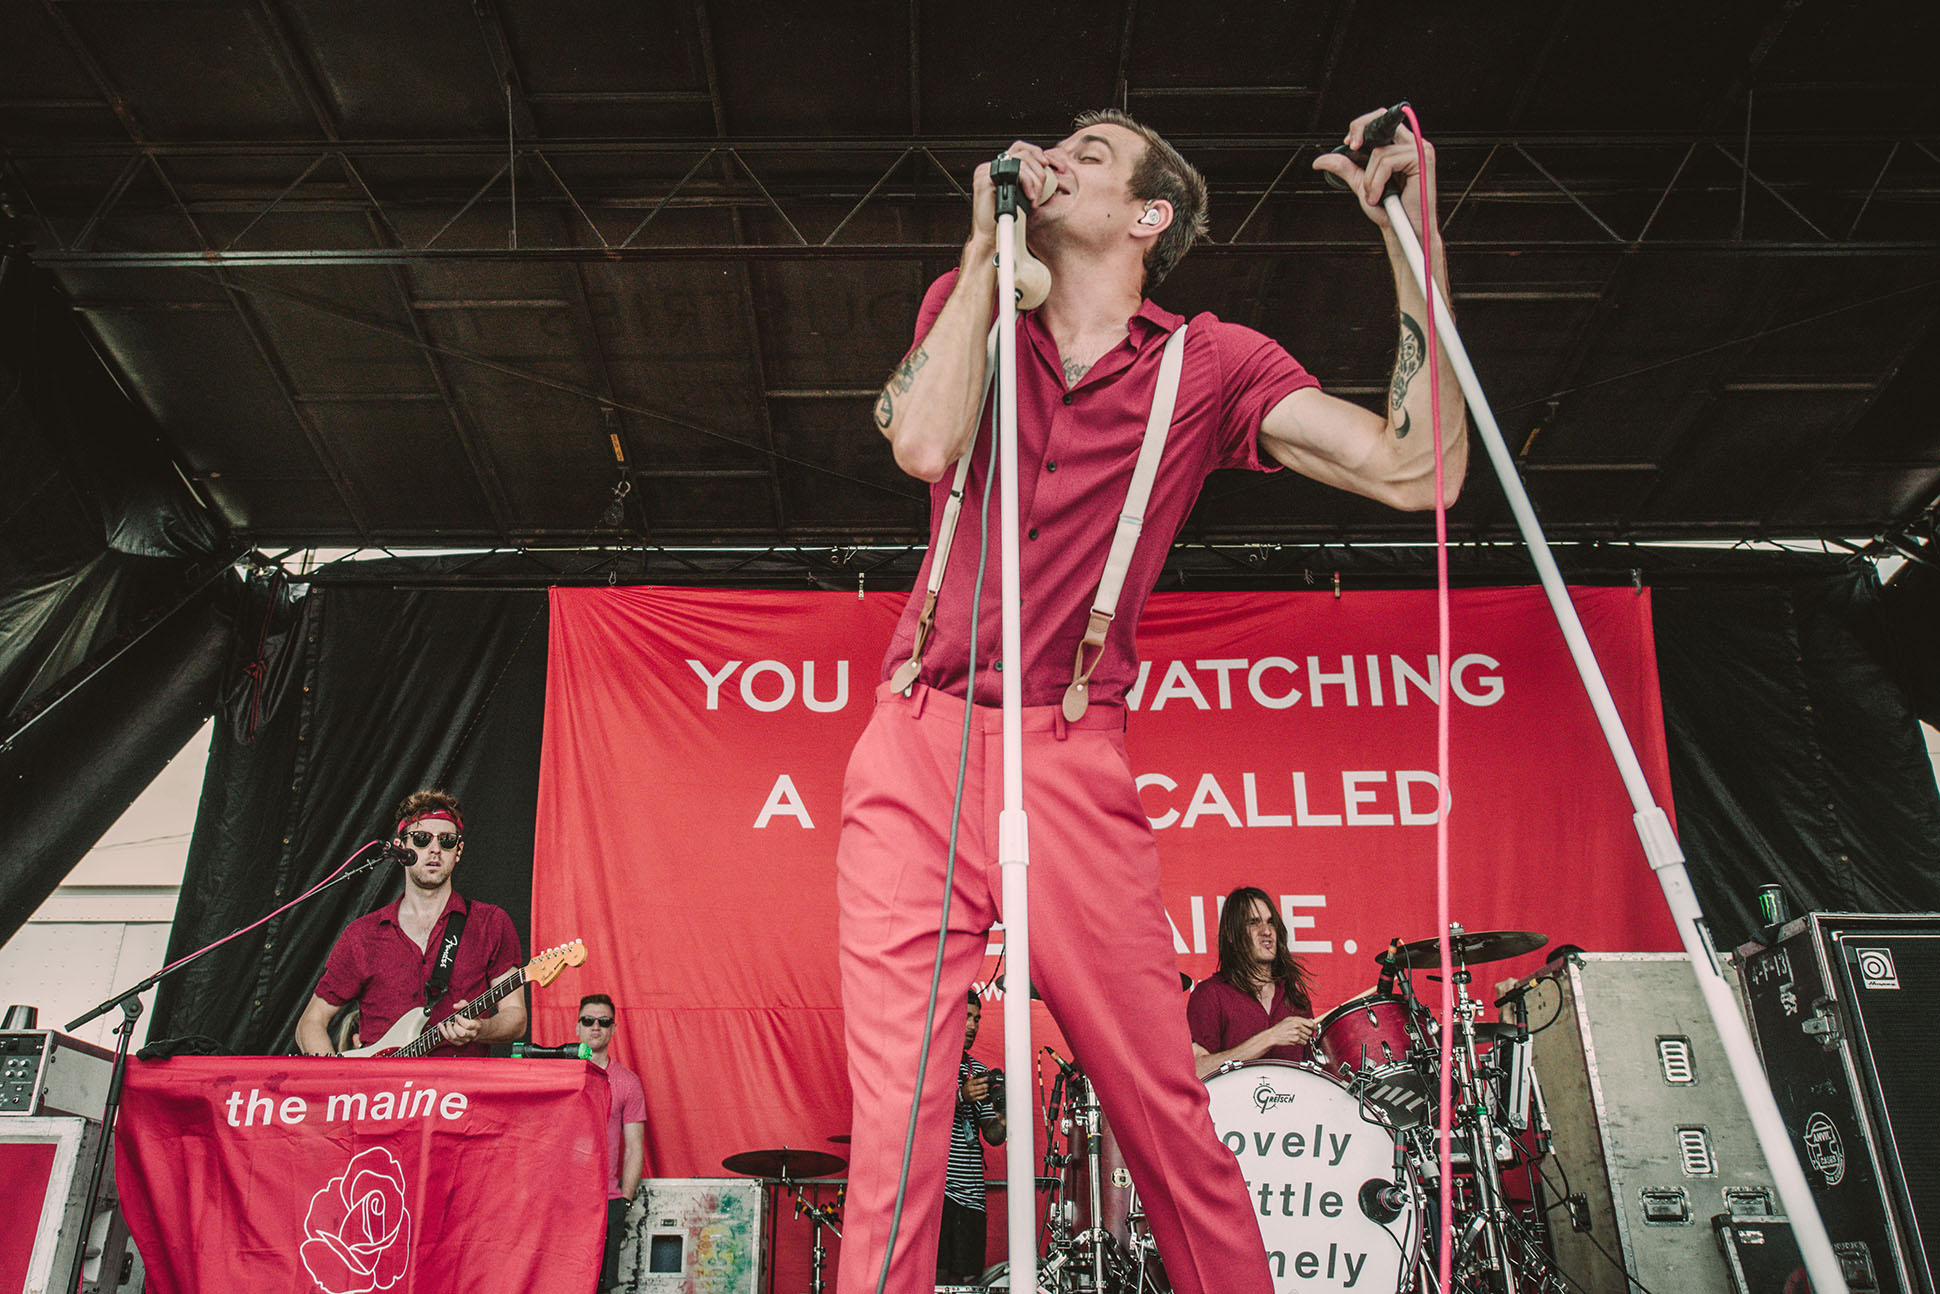 the maine john o'callaghan warped tour band concert rock photo photography image